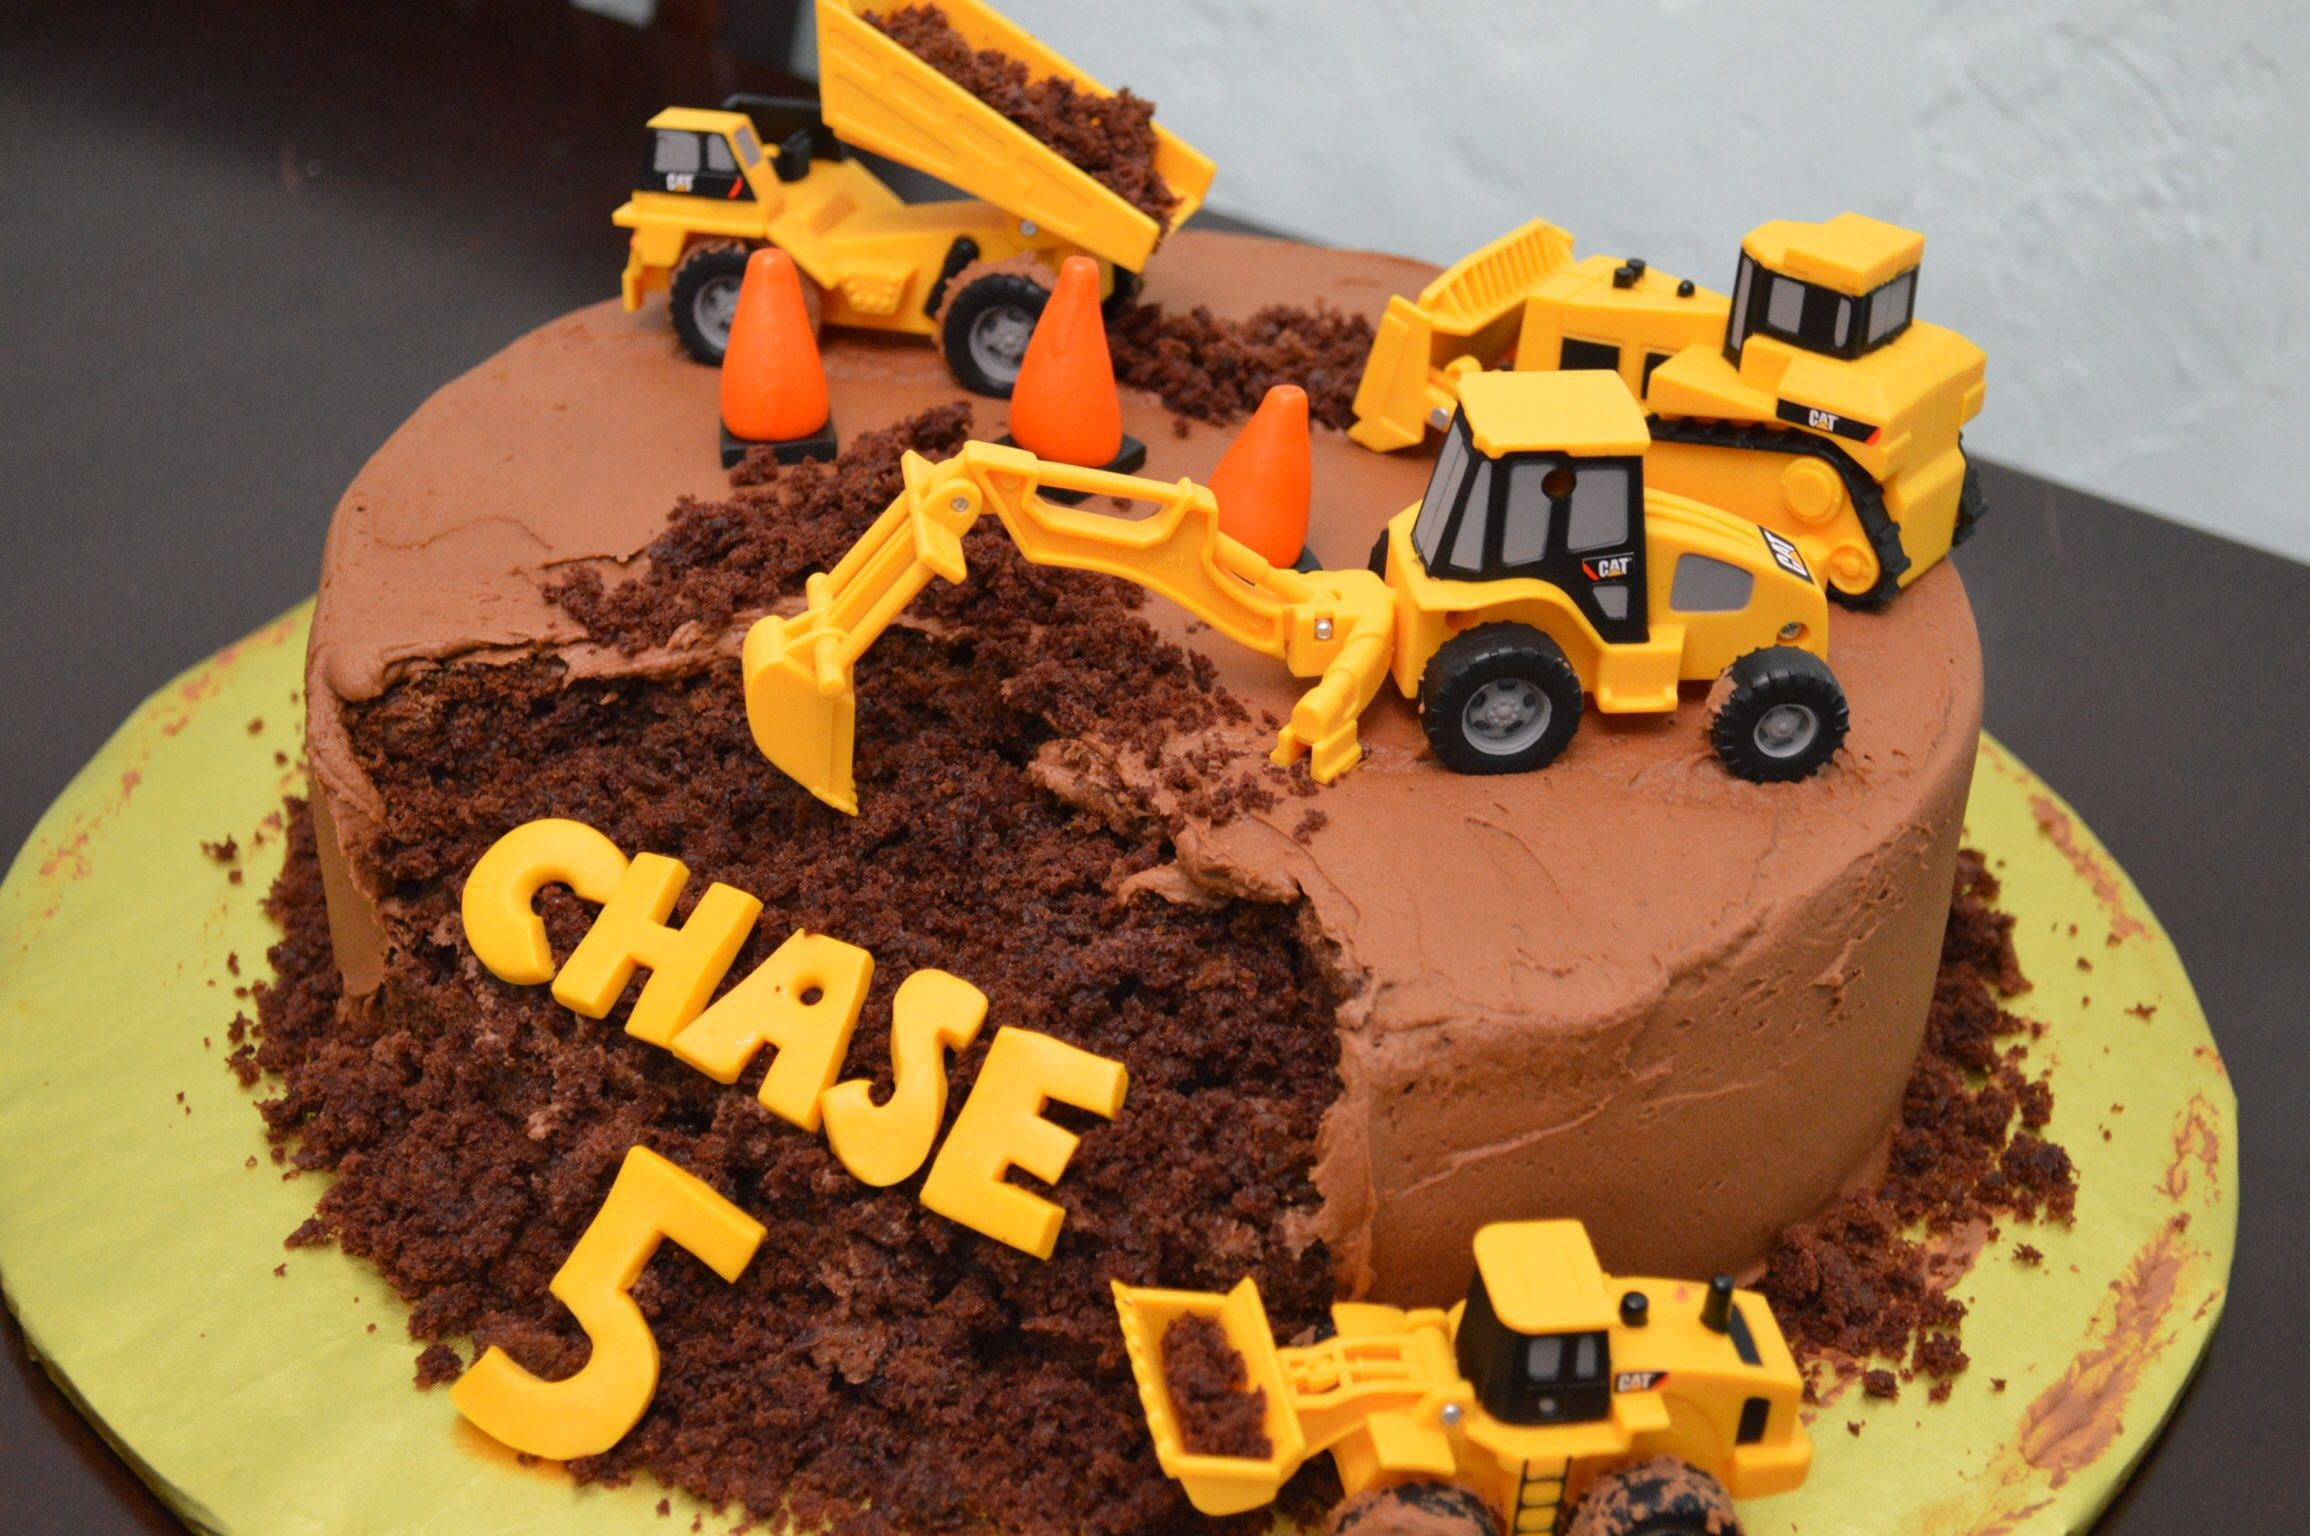 Astonishing Bulldozer Birthday Cakes With Images Birthday Cake Kids Personalised Birthday Cards Beptaeletsinfo